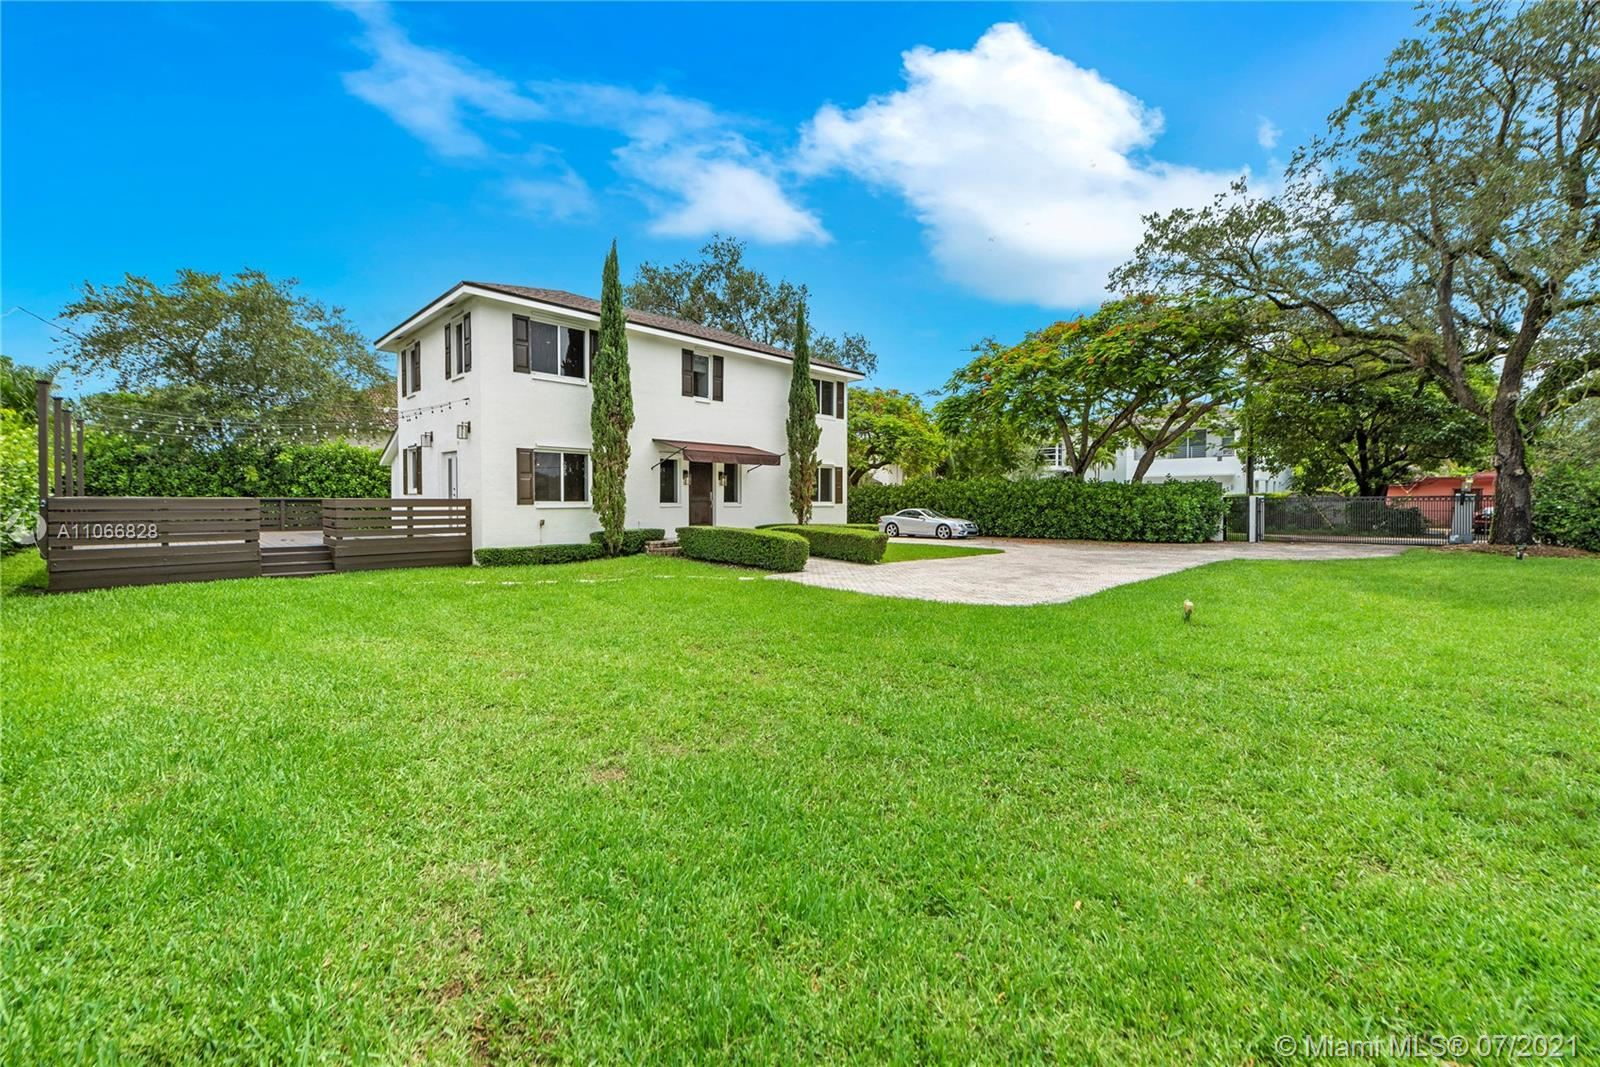 7055 Sunset Dr, Miami, FL 33143 - #: A11066828